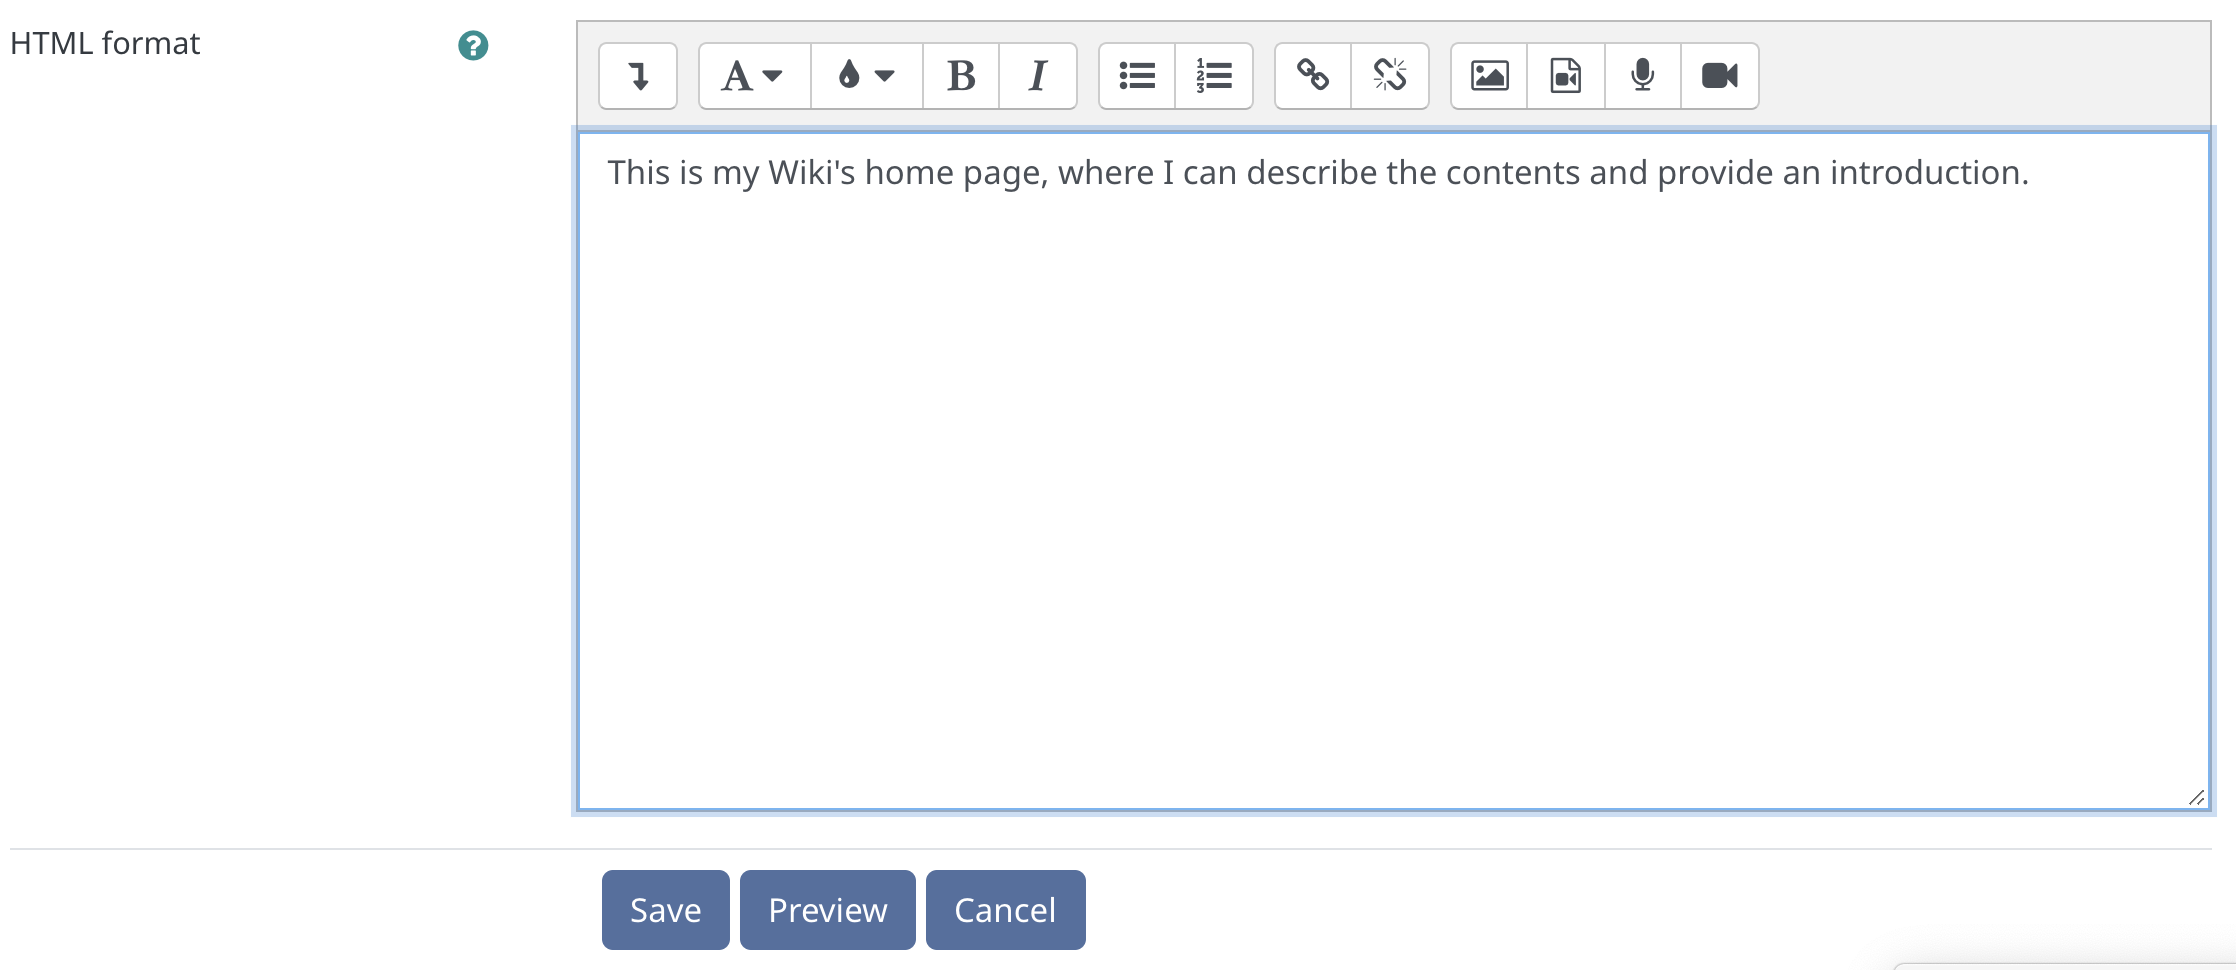 Saving the first page of your wiki